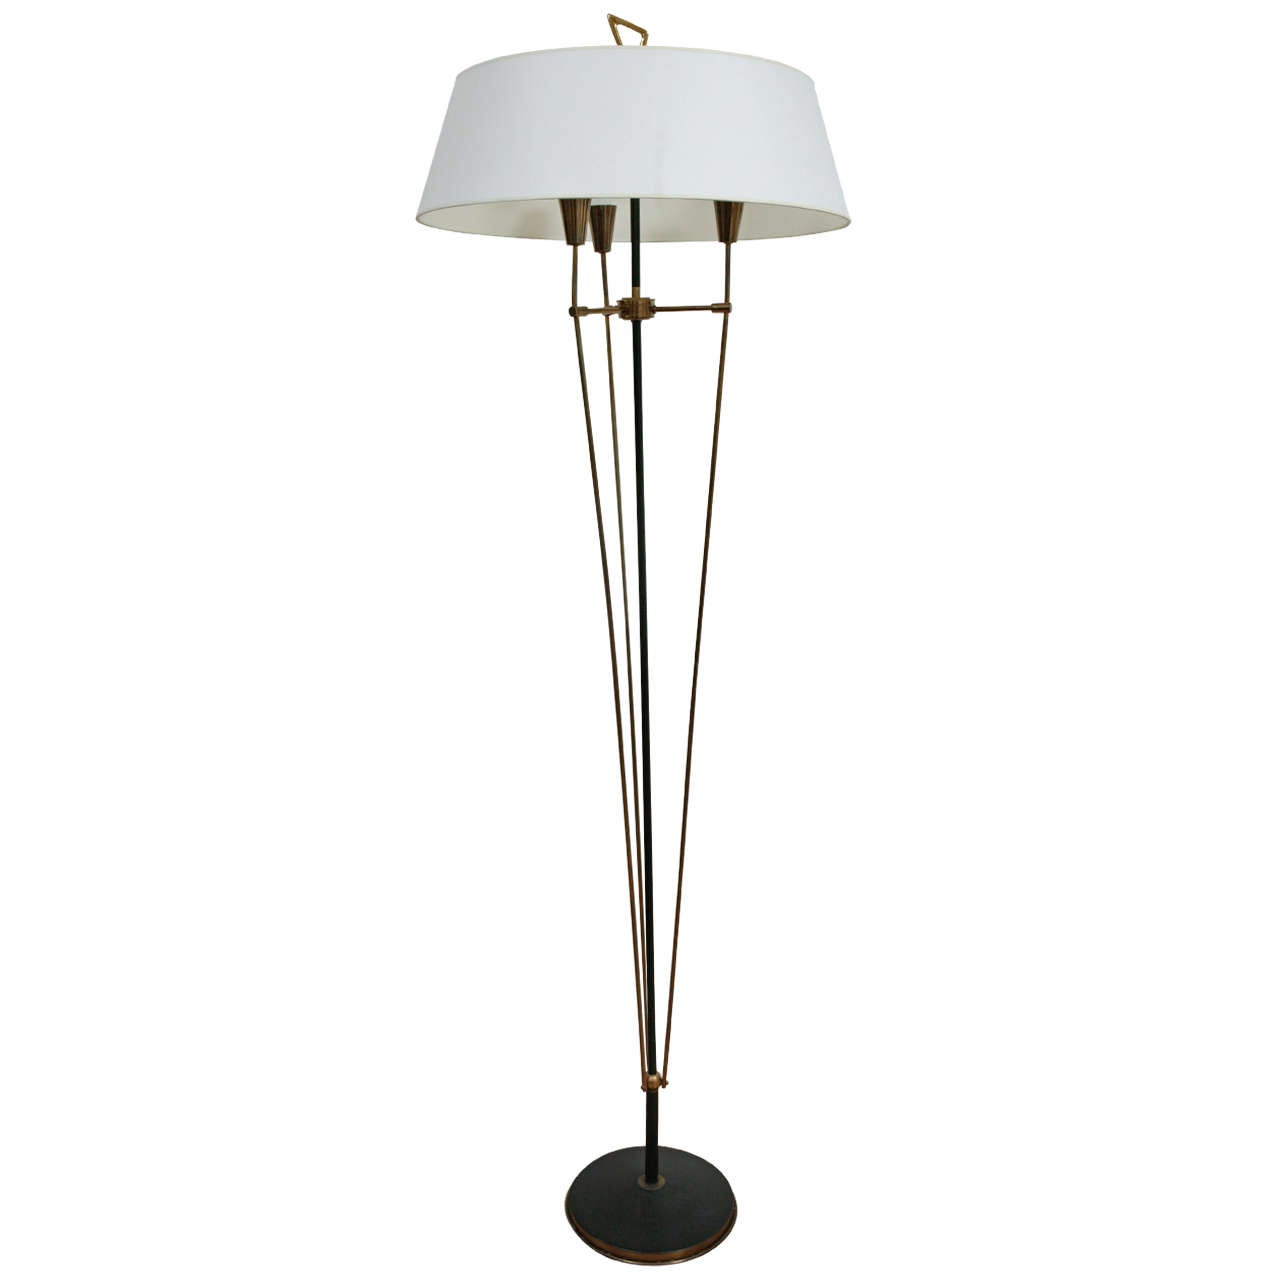 Fifties French Floor Lamp By Arlus